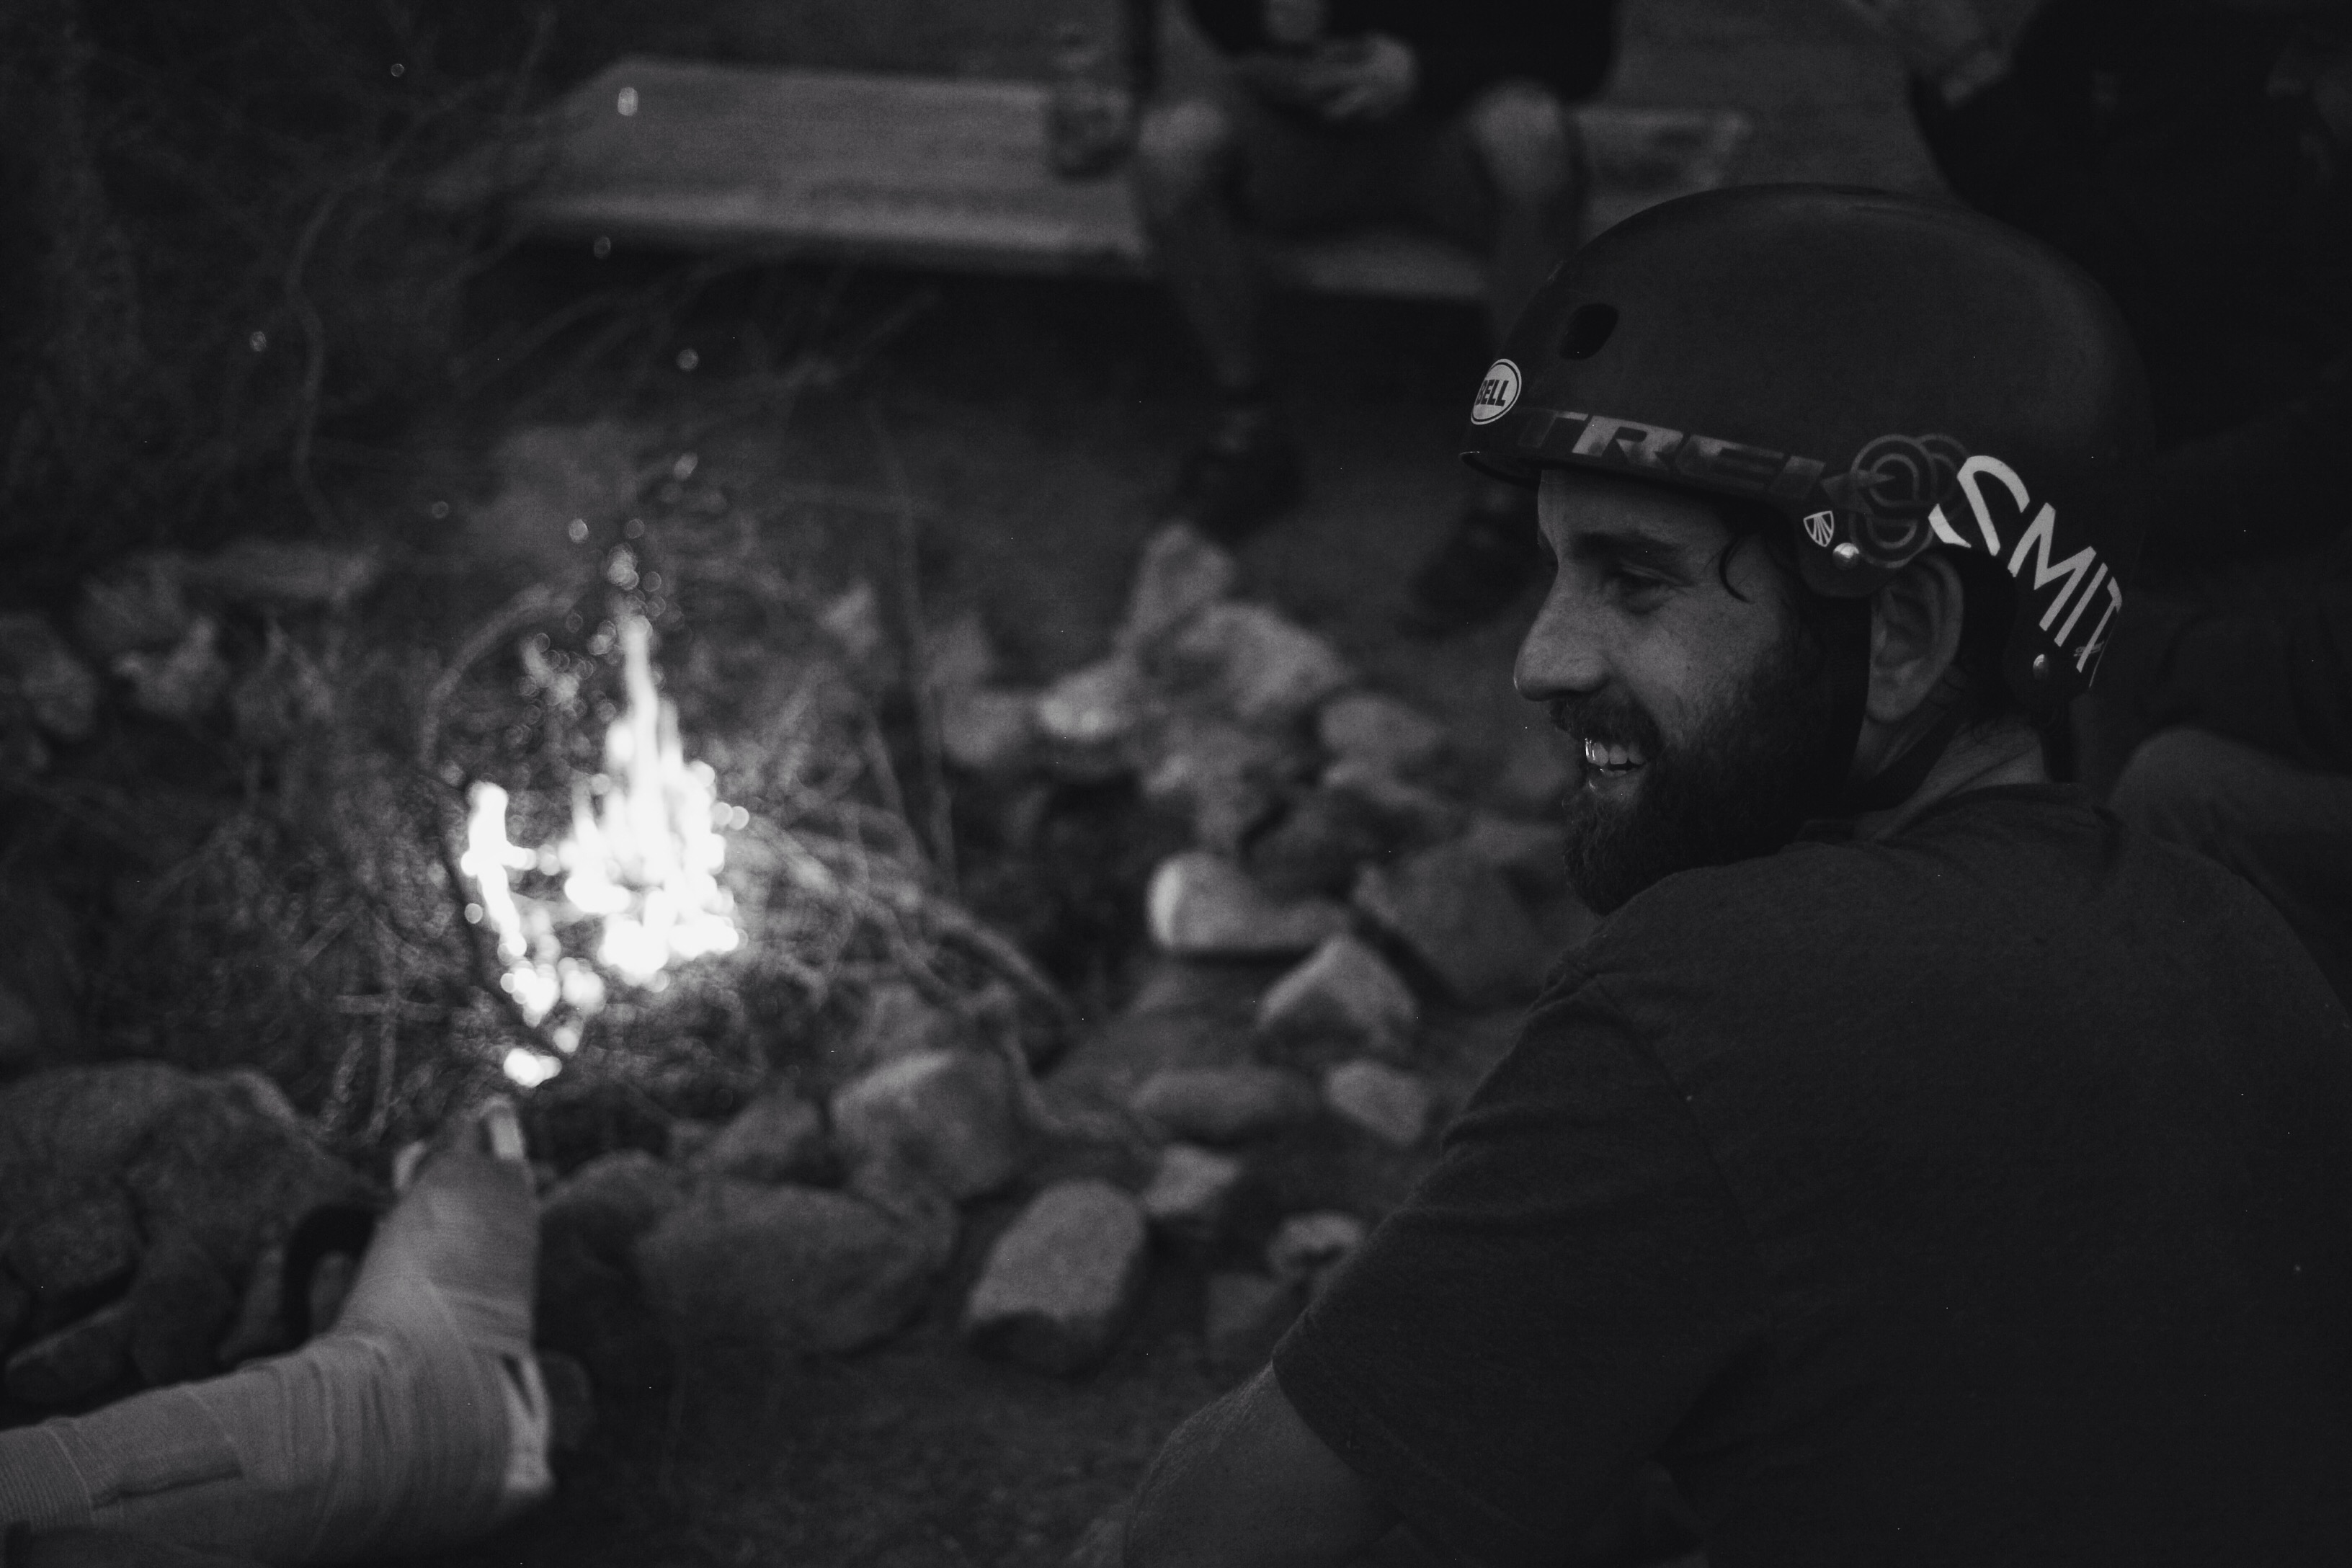 Bonfire and roadtrip stories after a good dirt jump session.